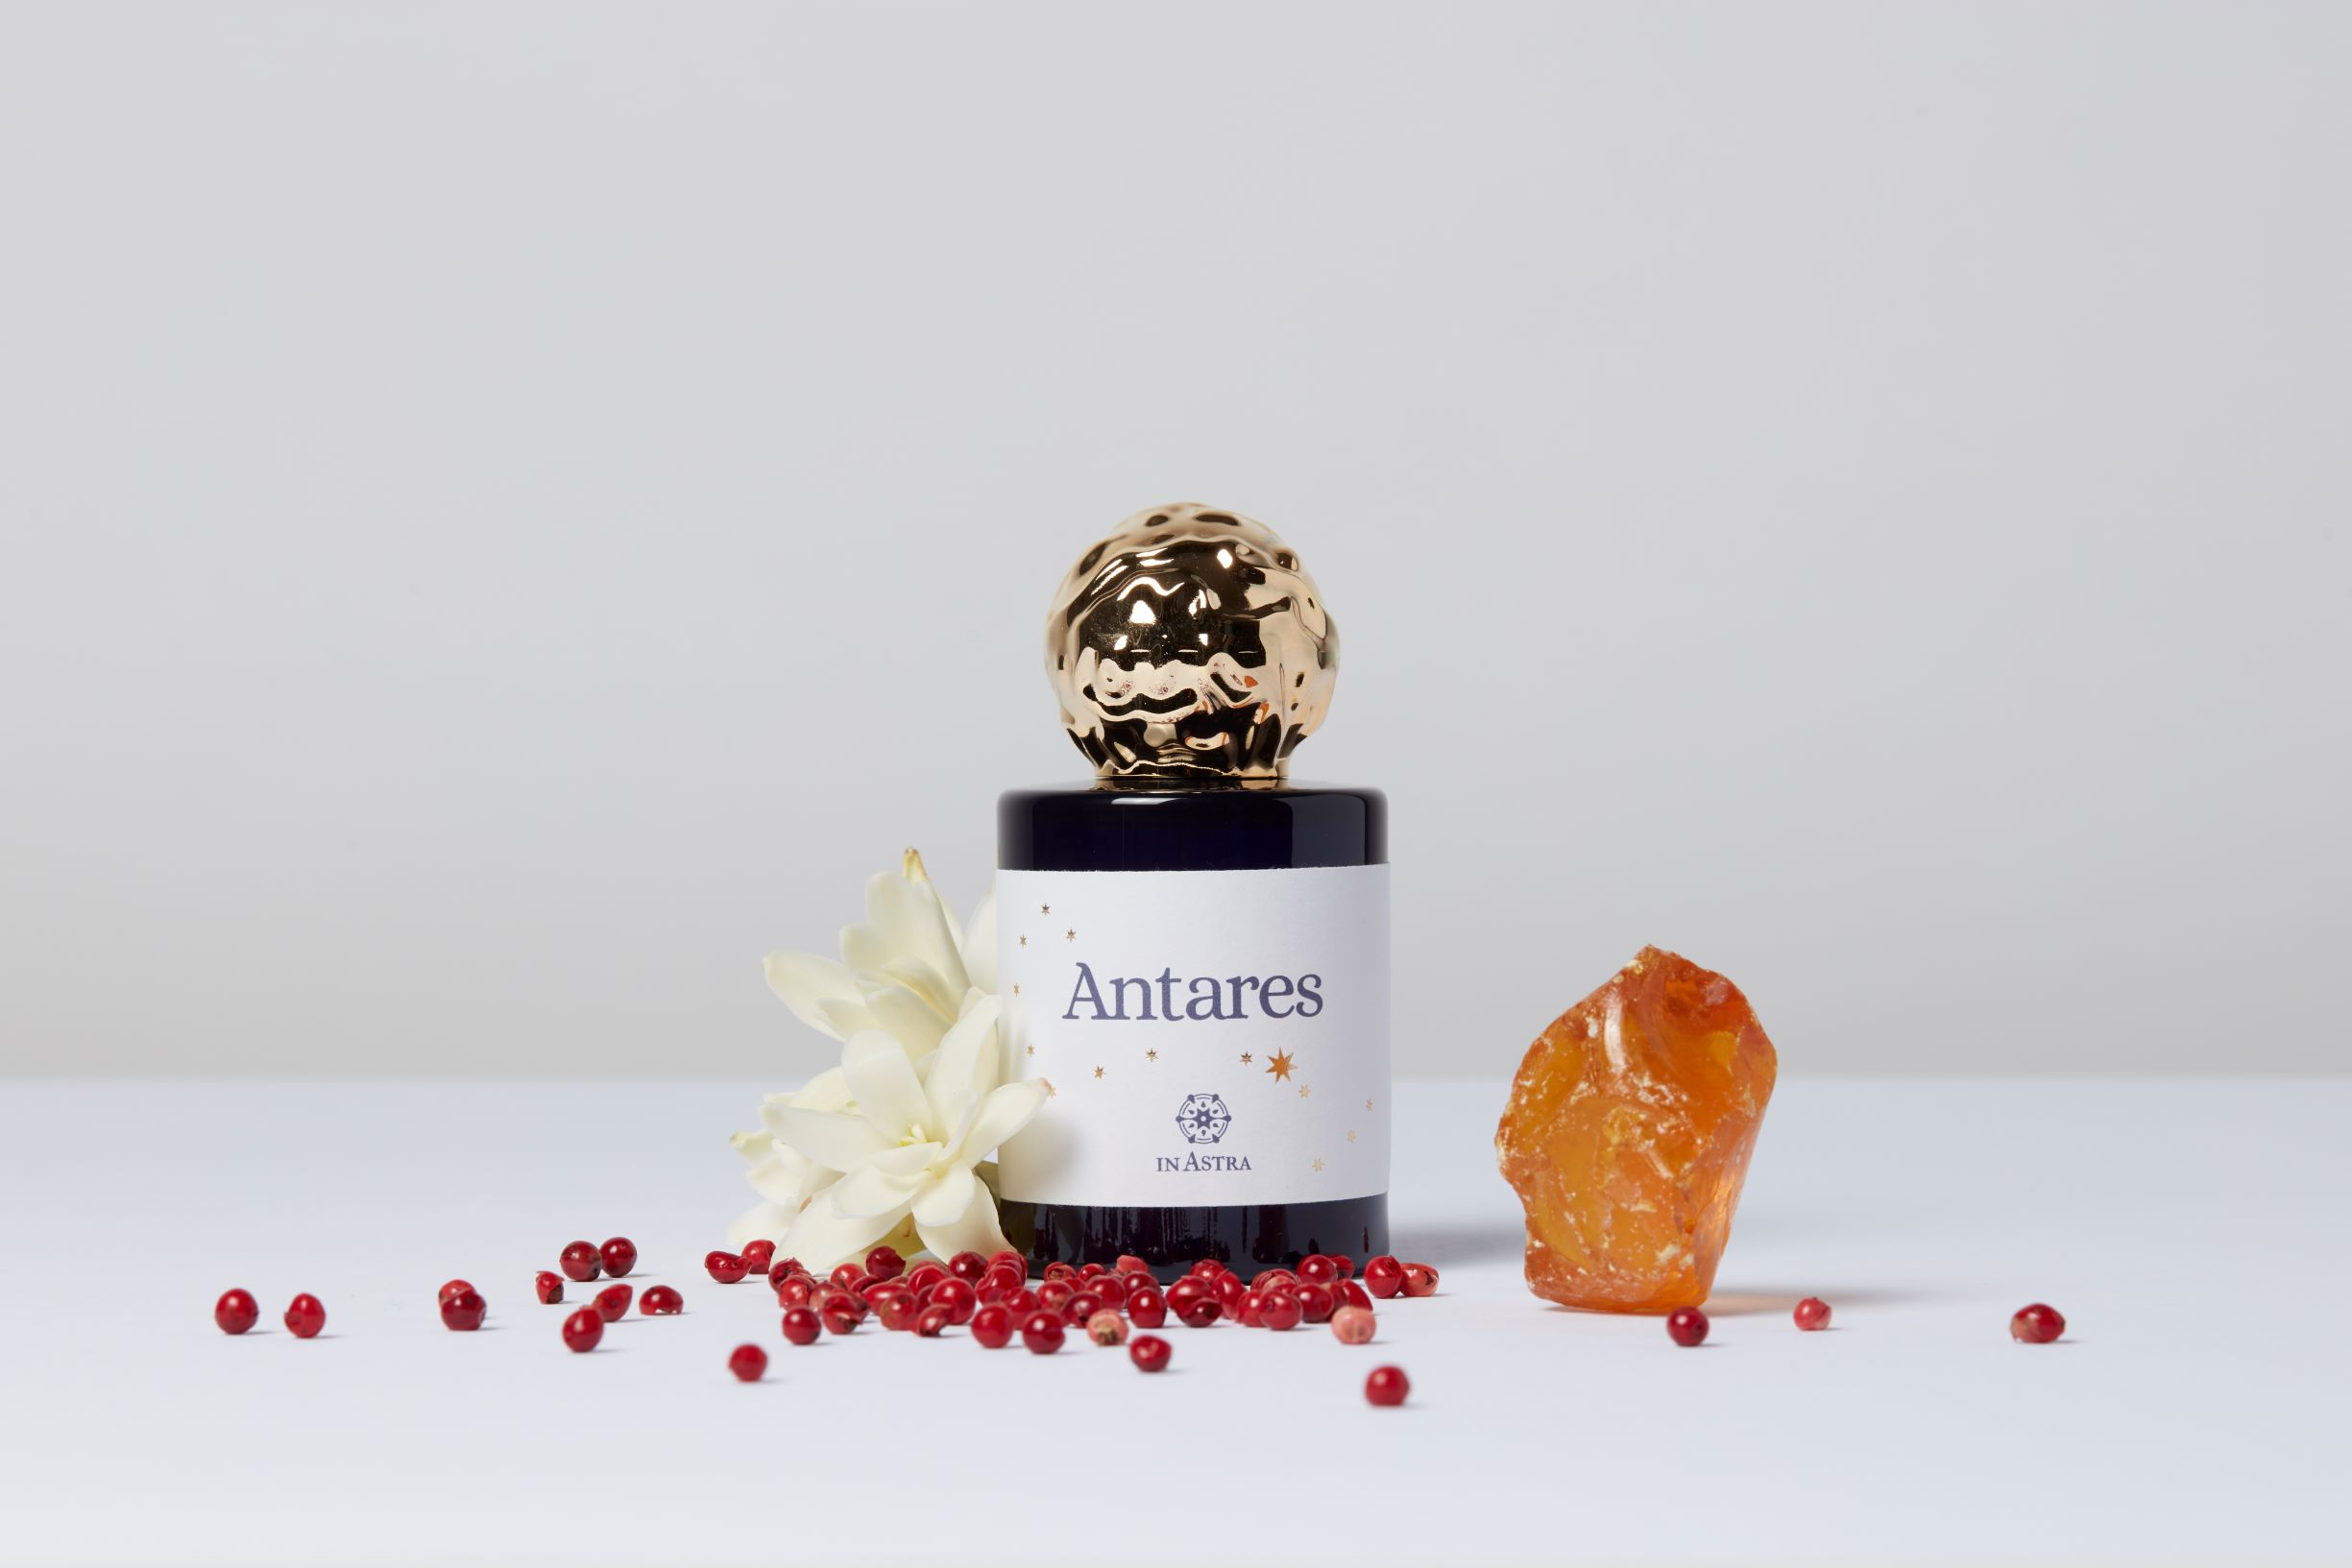 In Astra Antares bottle